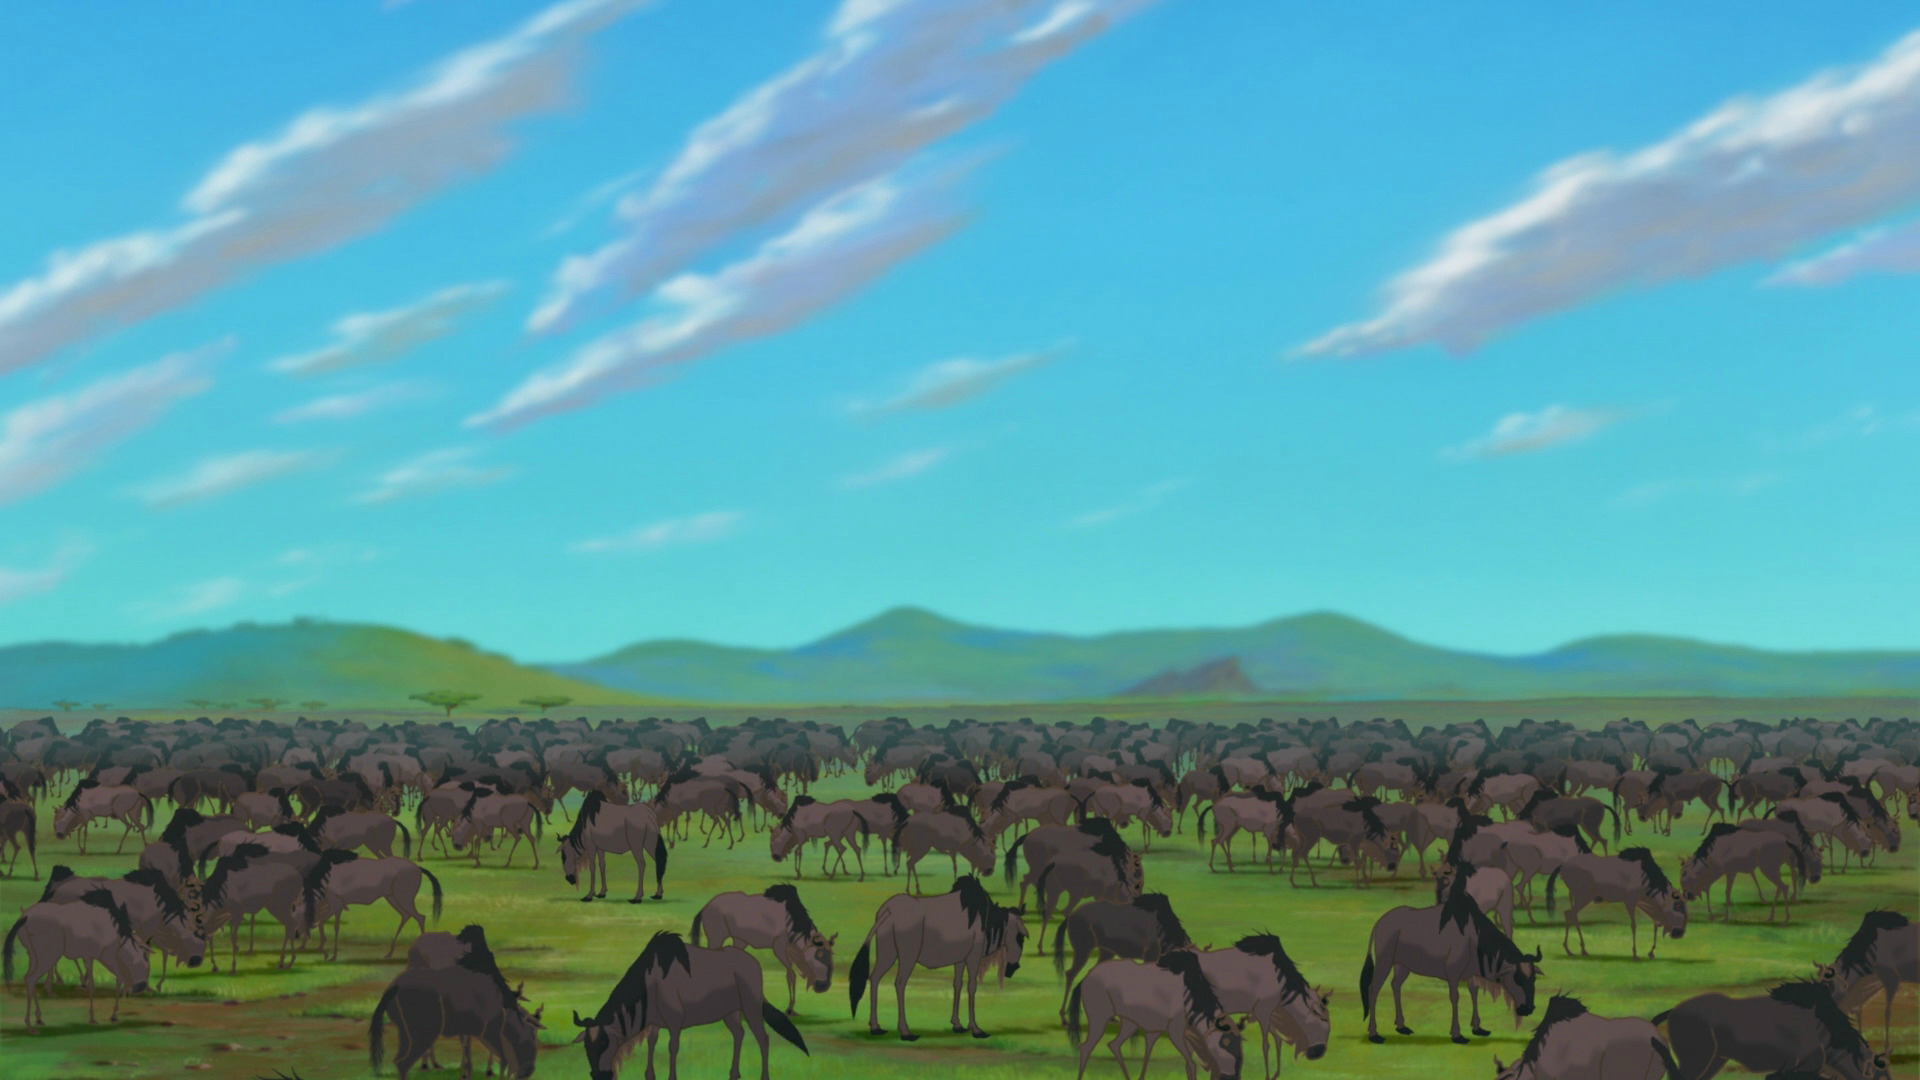 Wildebeests The Lion King Wiki Fandom Powered By Wikia